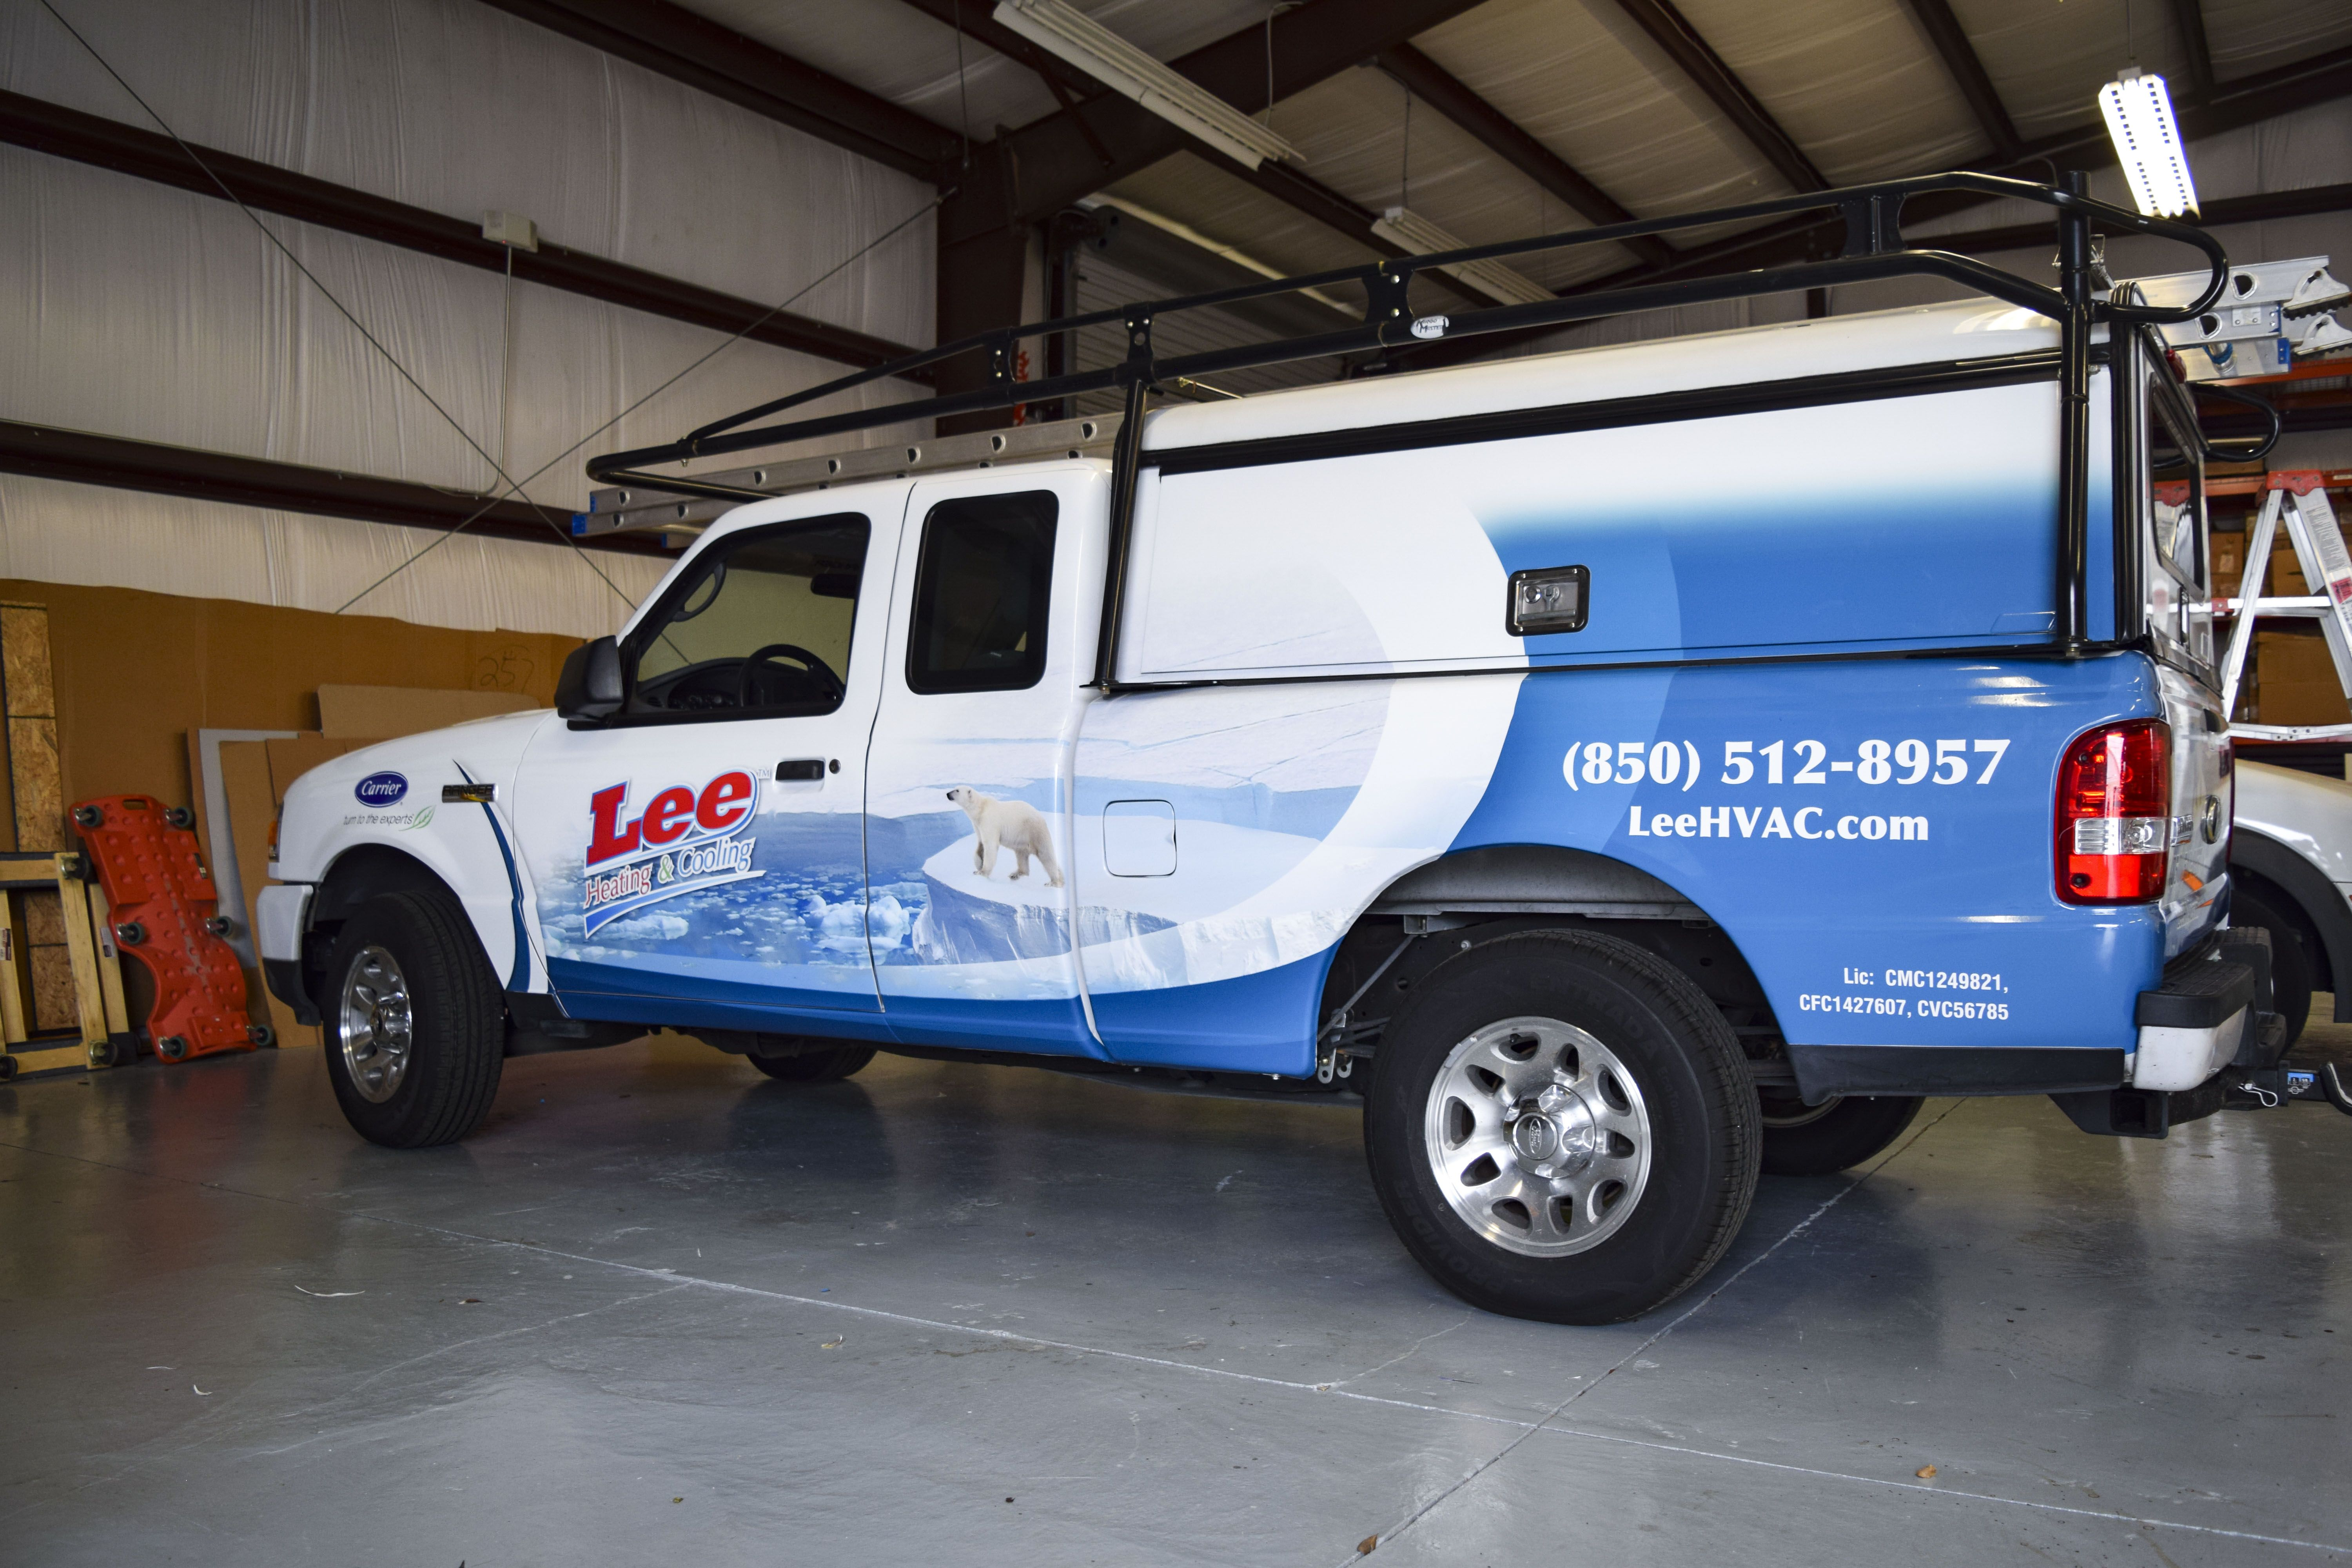 Lee Hvac Truck Wrap By Pensacola Sign In Pensacola Florida On